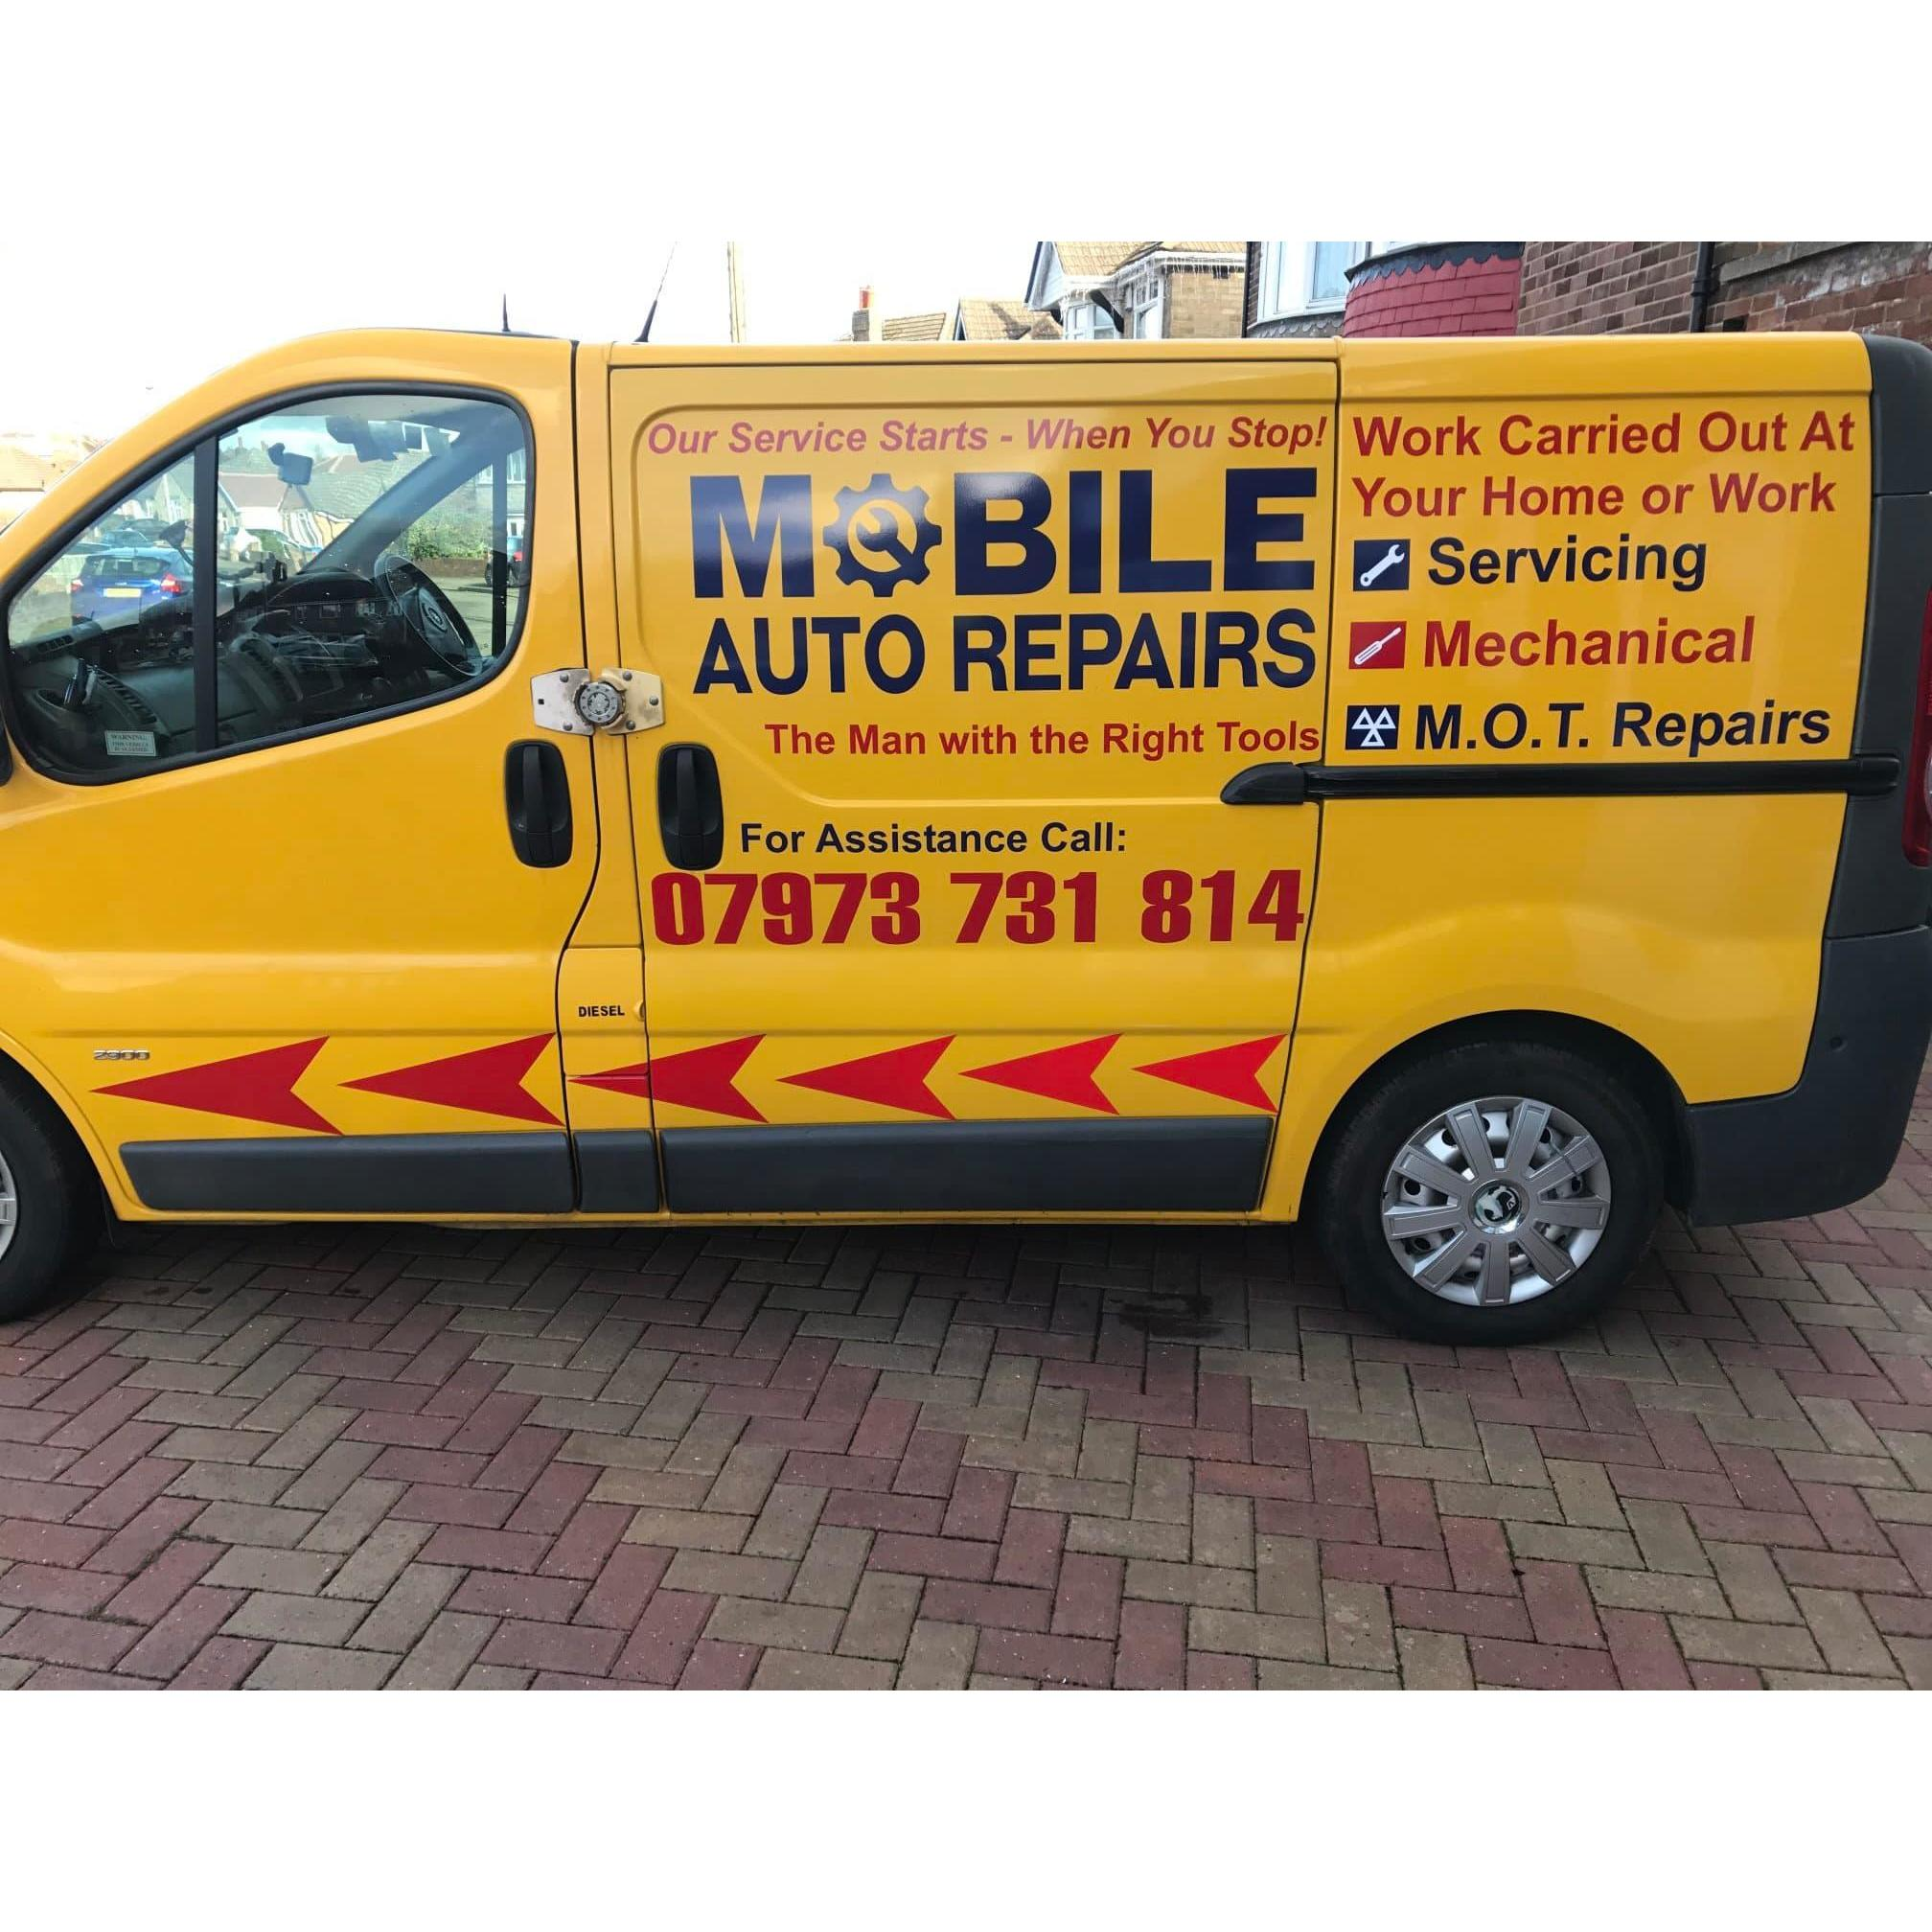 Mobile Auto Repairs - Leicester, Leicestershire LE4 0GE - 07973 731814 | ShowMeLocal.com